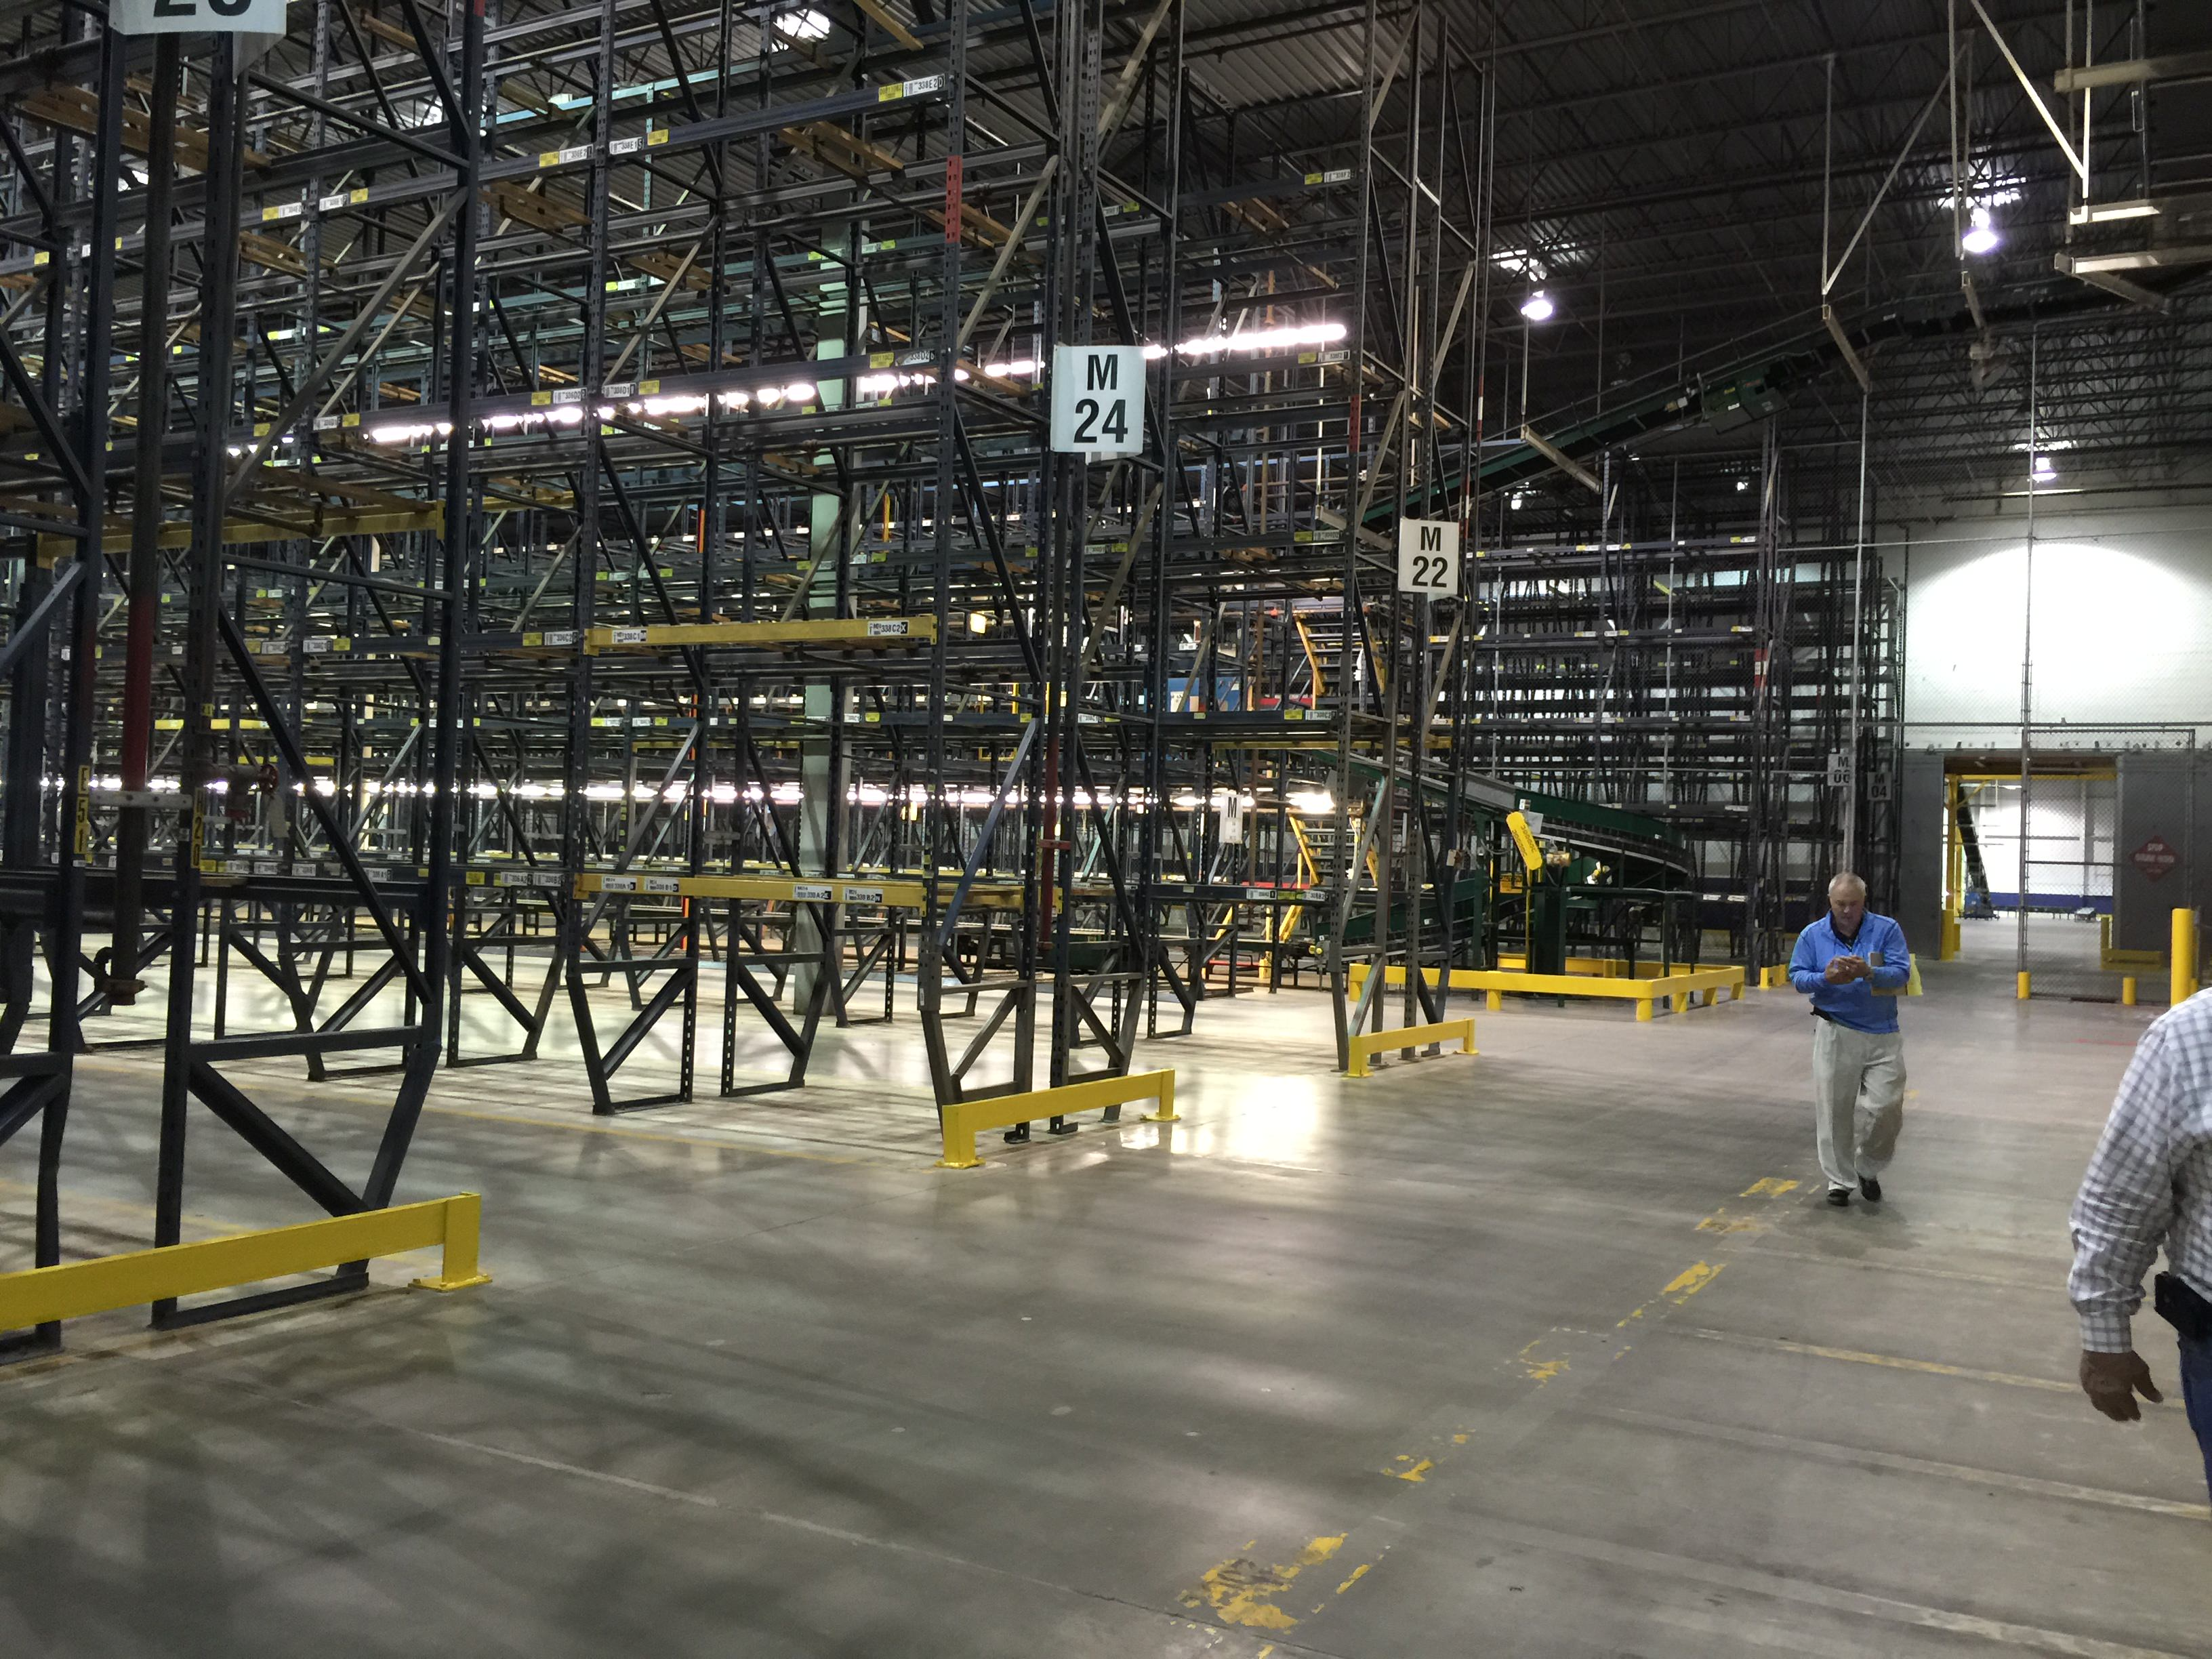 warehouse storage solutions with material handling, installation, pallet raking and warehouse design.